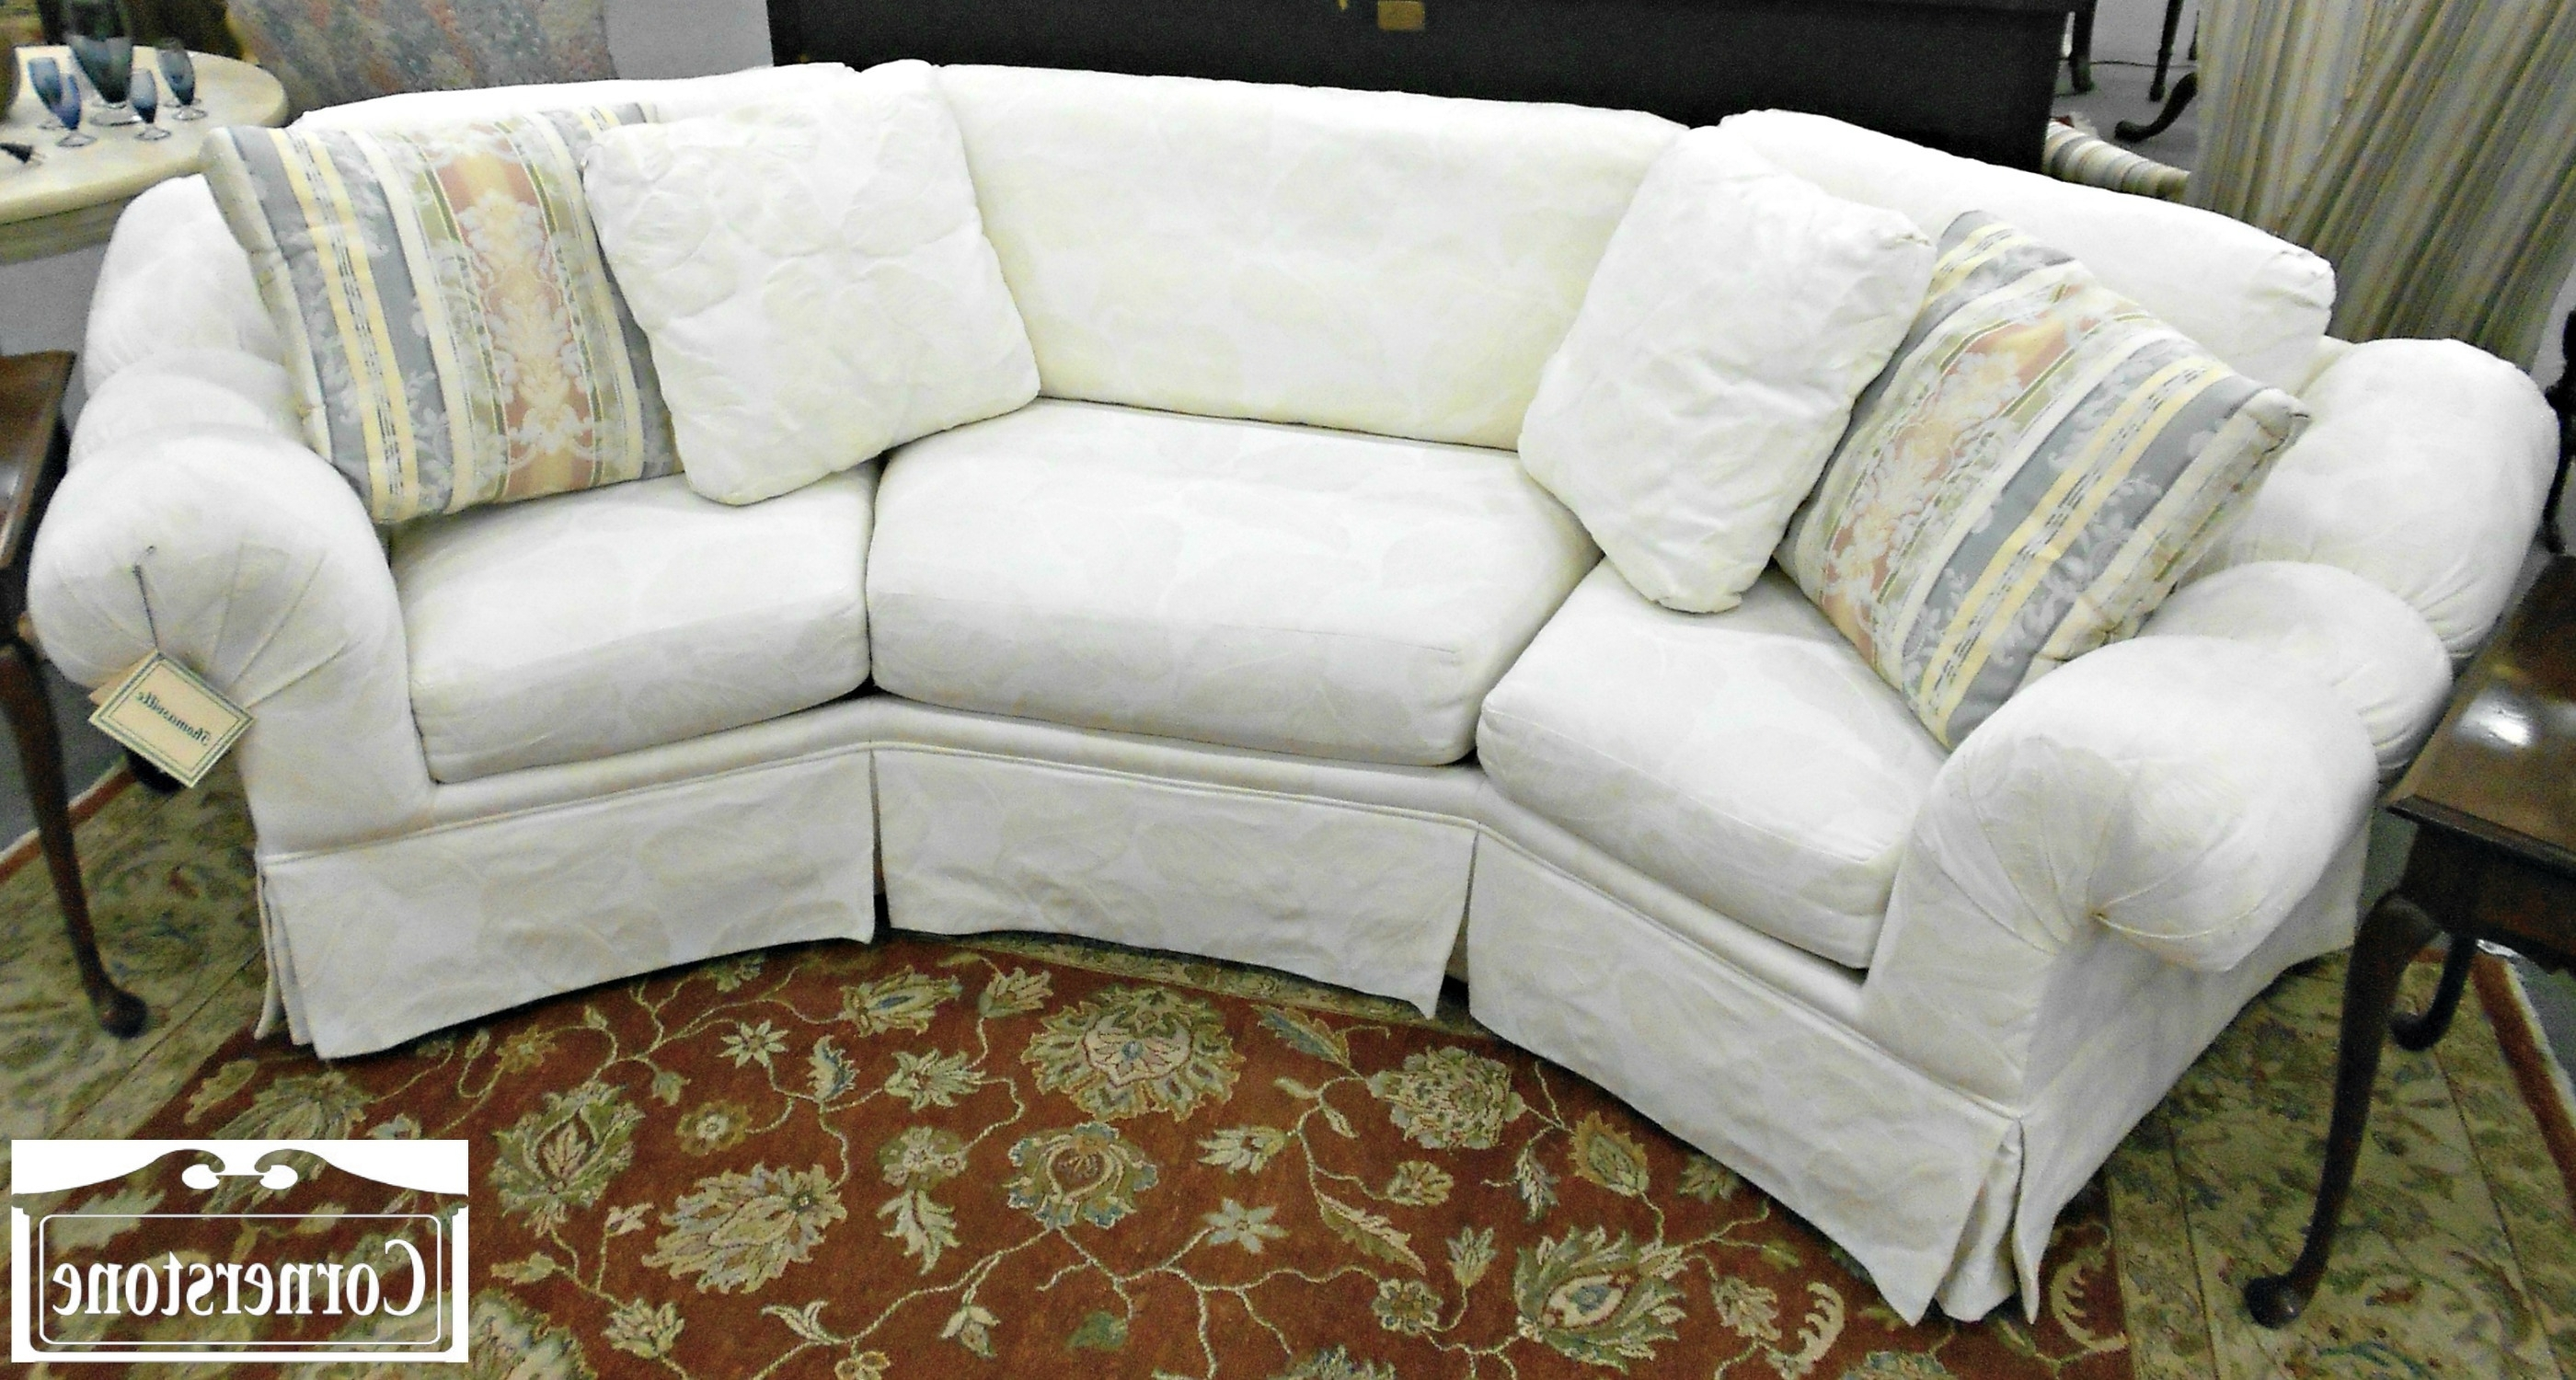 Deep Pertaining To Most Recently Released Thomasville Sectional Sofas (View 5 of 20)